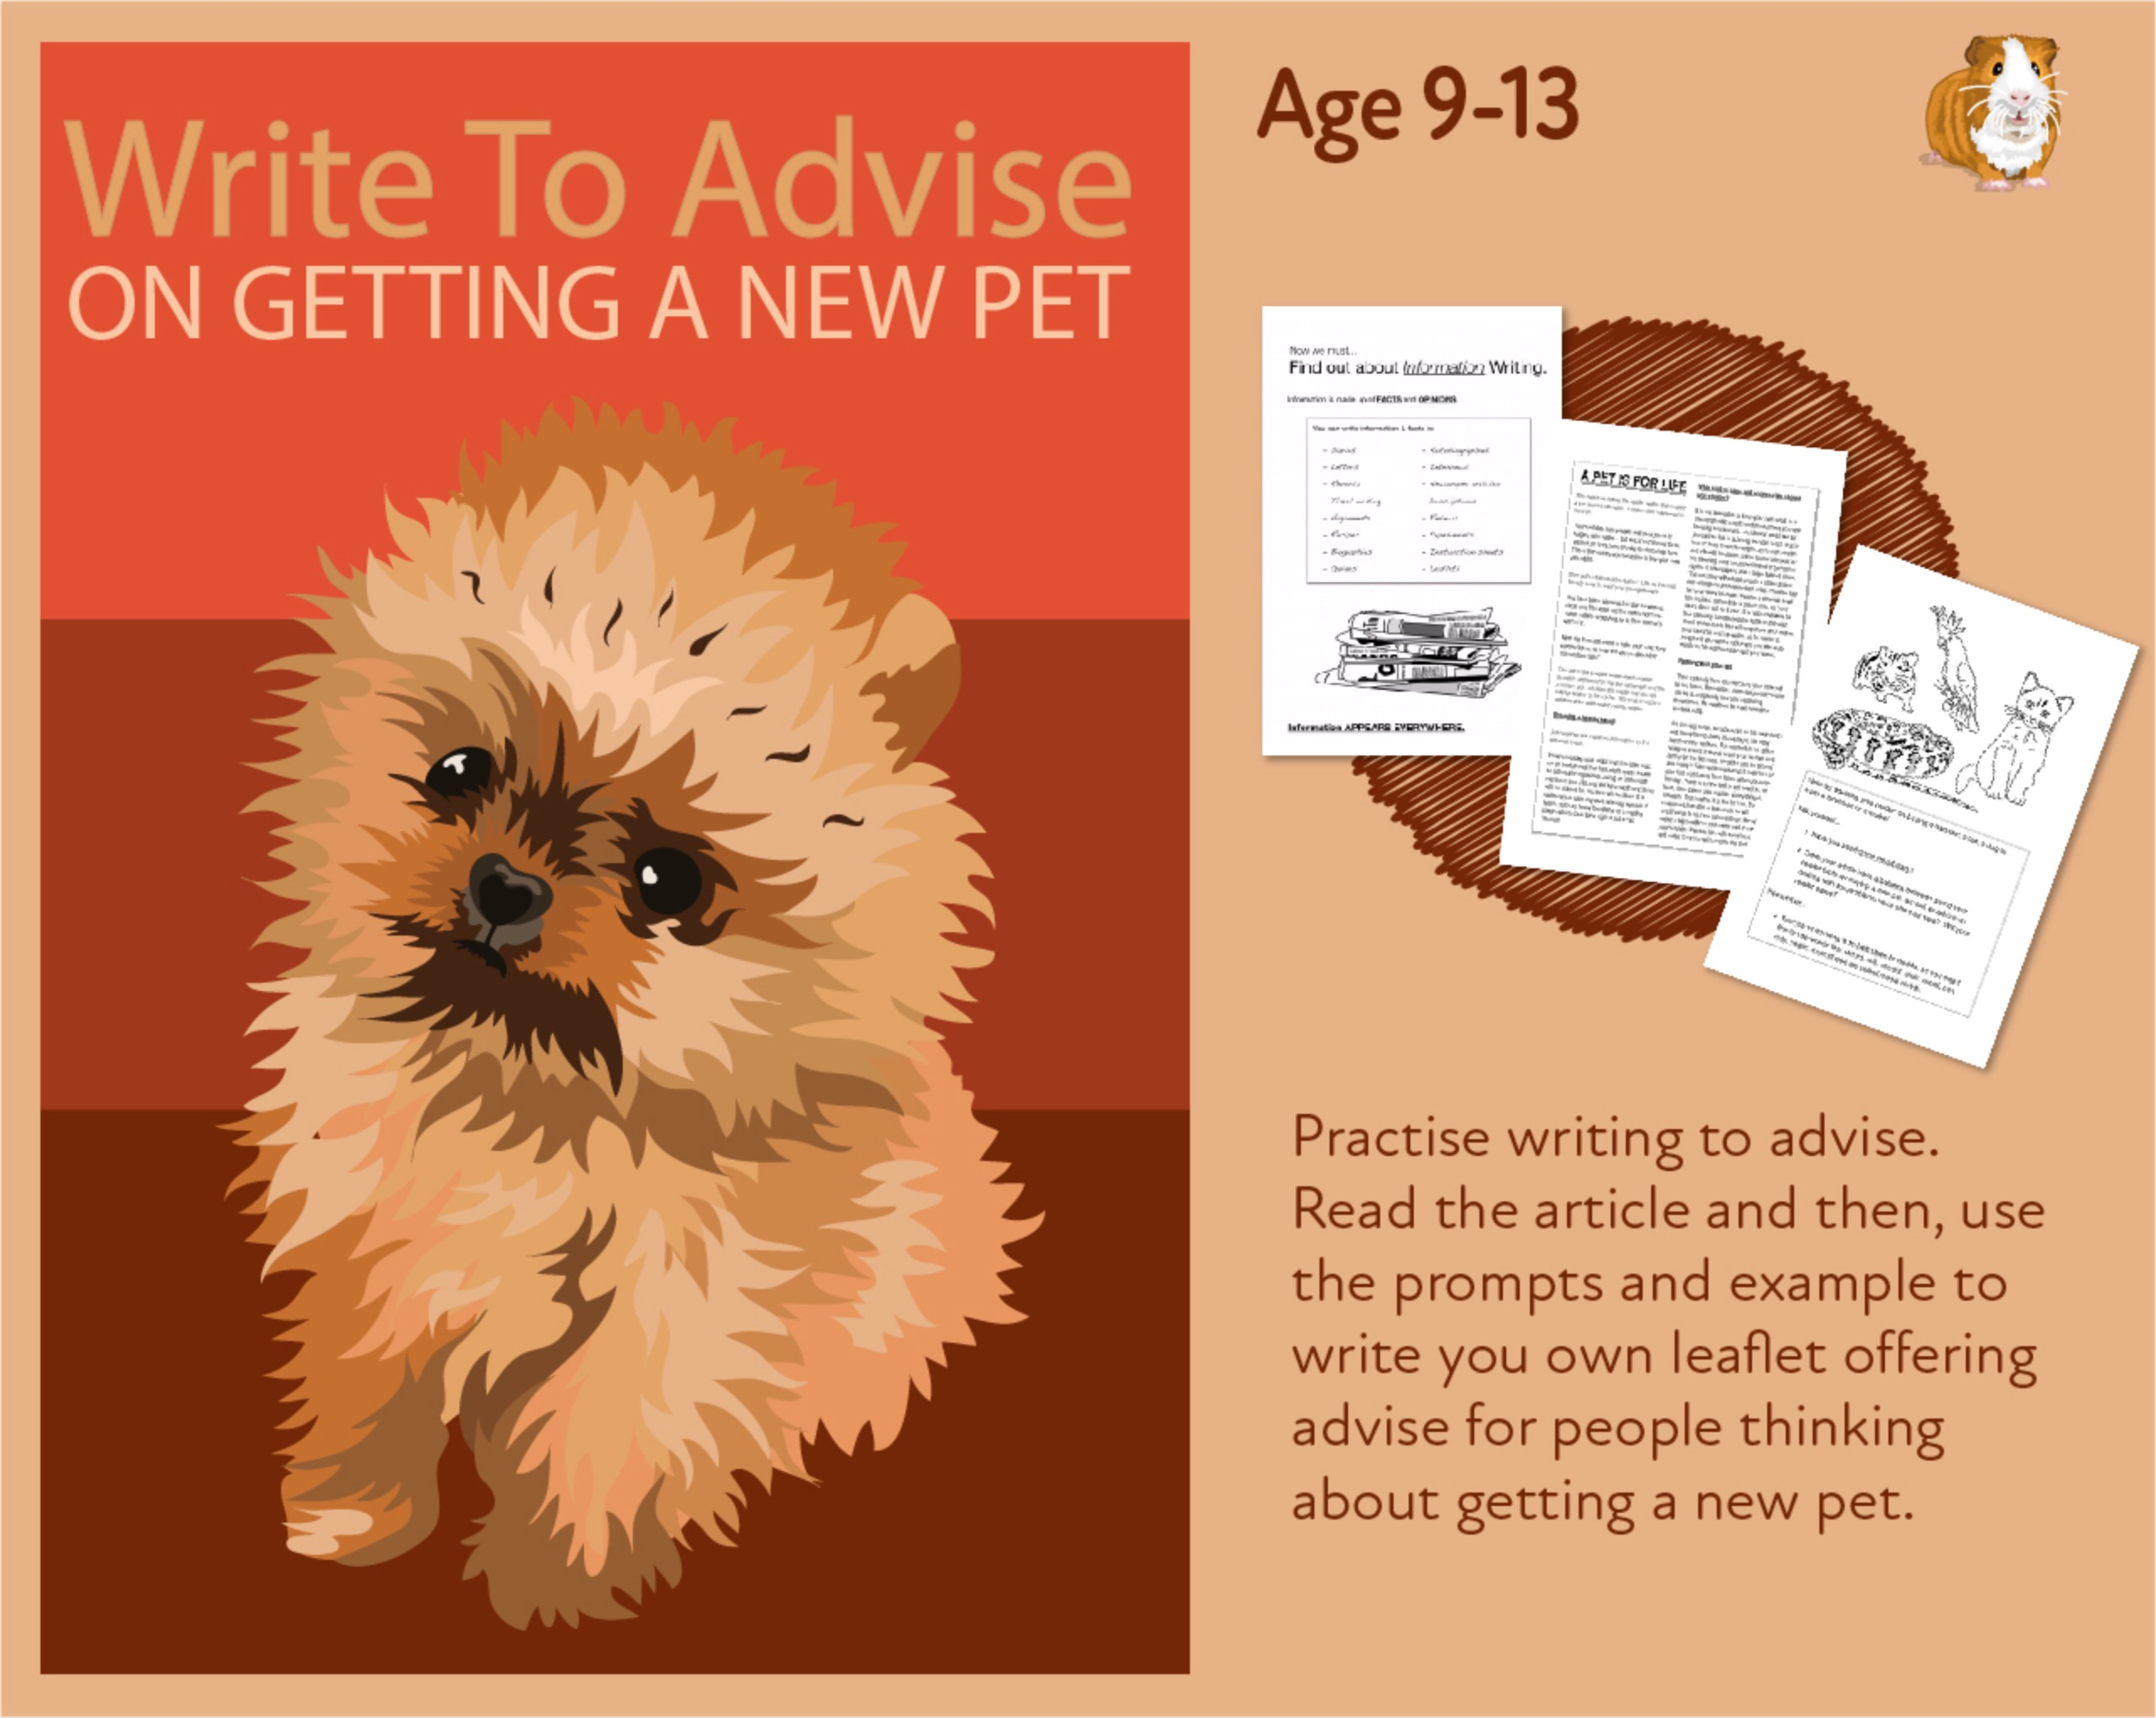 Practise Writing To Advise On Getting A New Pet (9-14 years)